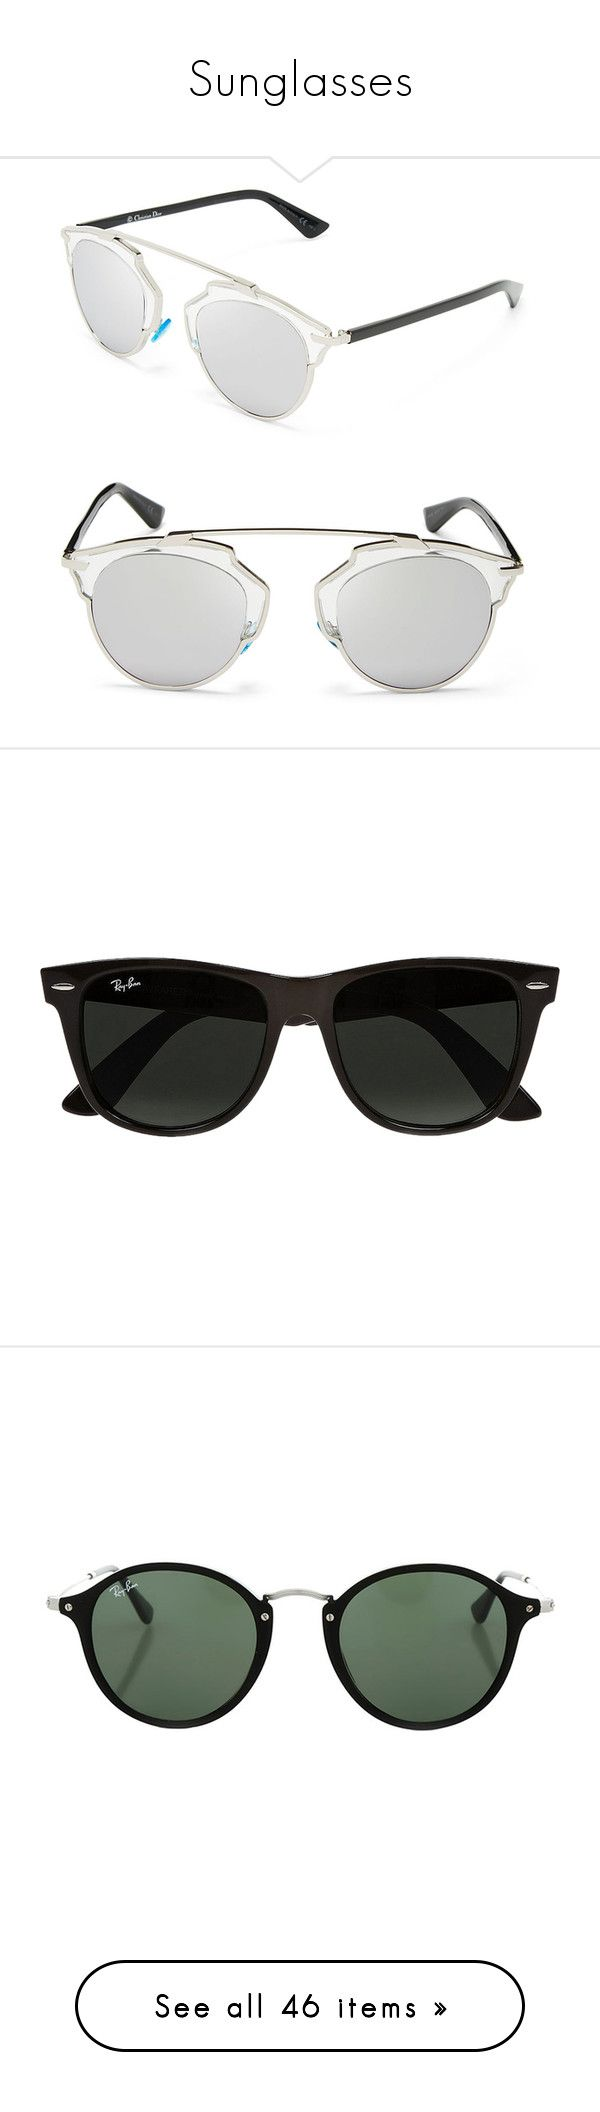 """""""Sunglasses"""" by livelifewhitnoregreats ❤ liked on Polyvore featuring accessories, eyewear, sunglasses, glasses, lunettes, mirrored glasses, mirrored sunglasses, gold mirrored sunglasses, gold sunglasses and mirror sunglasses"""